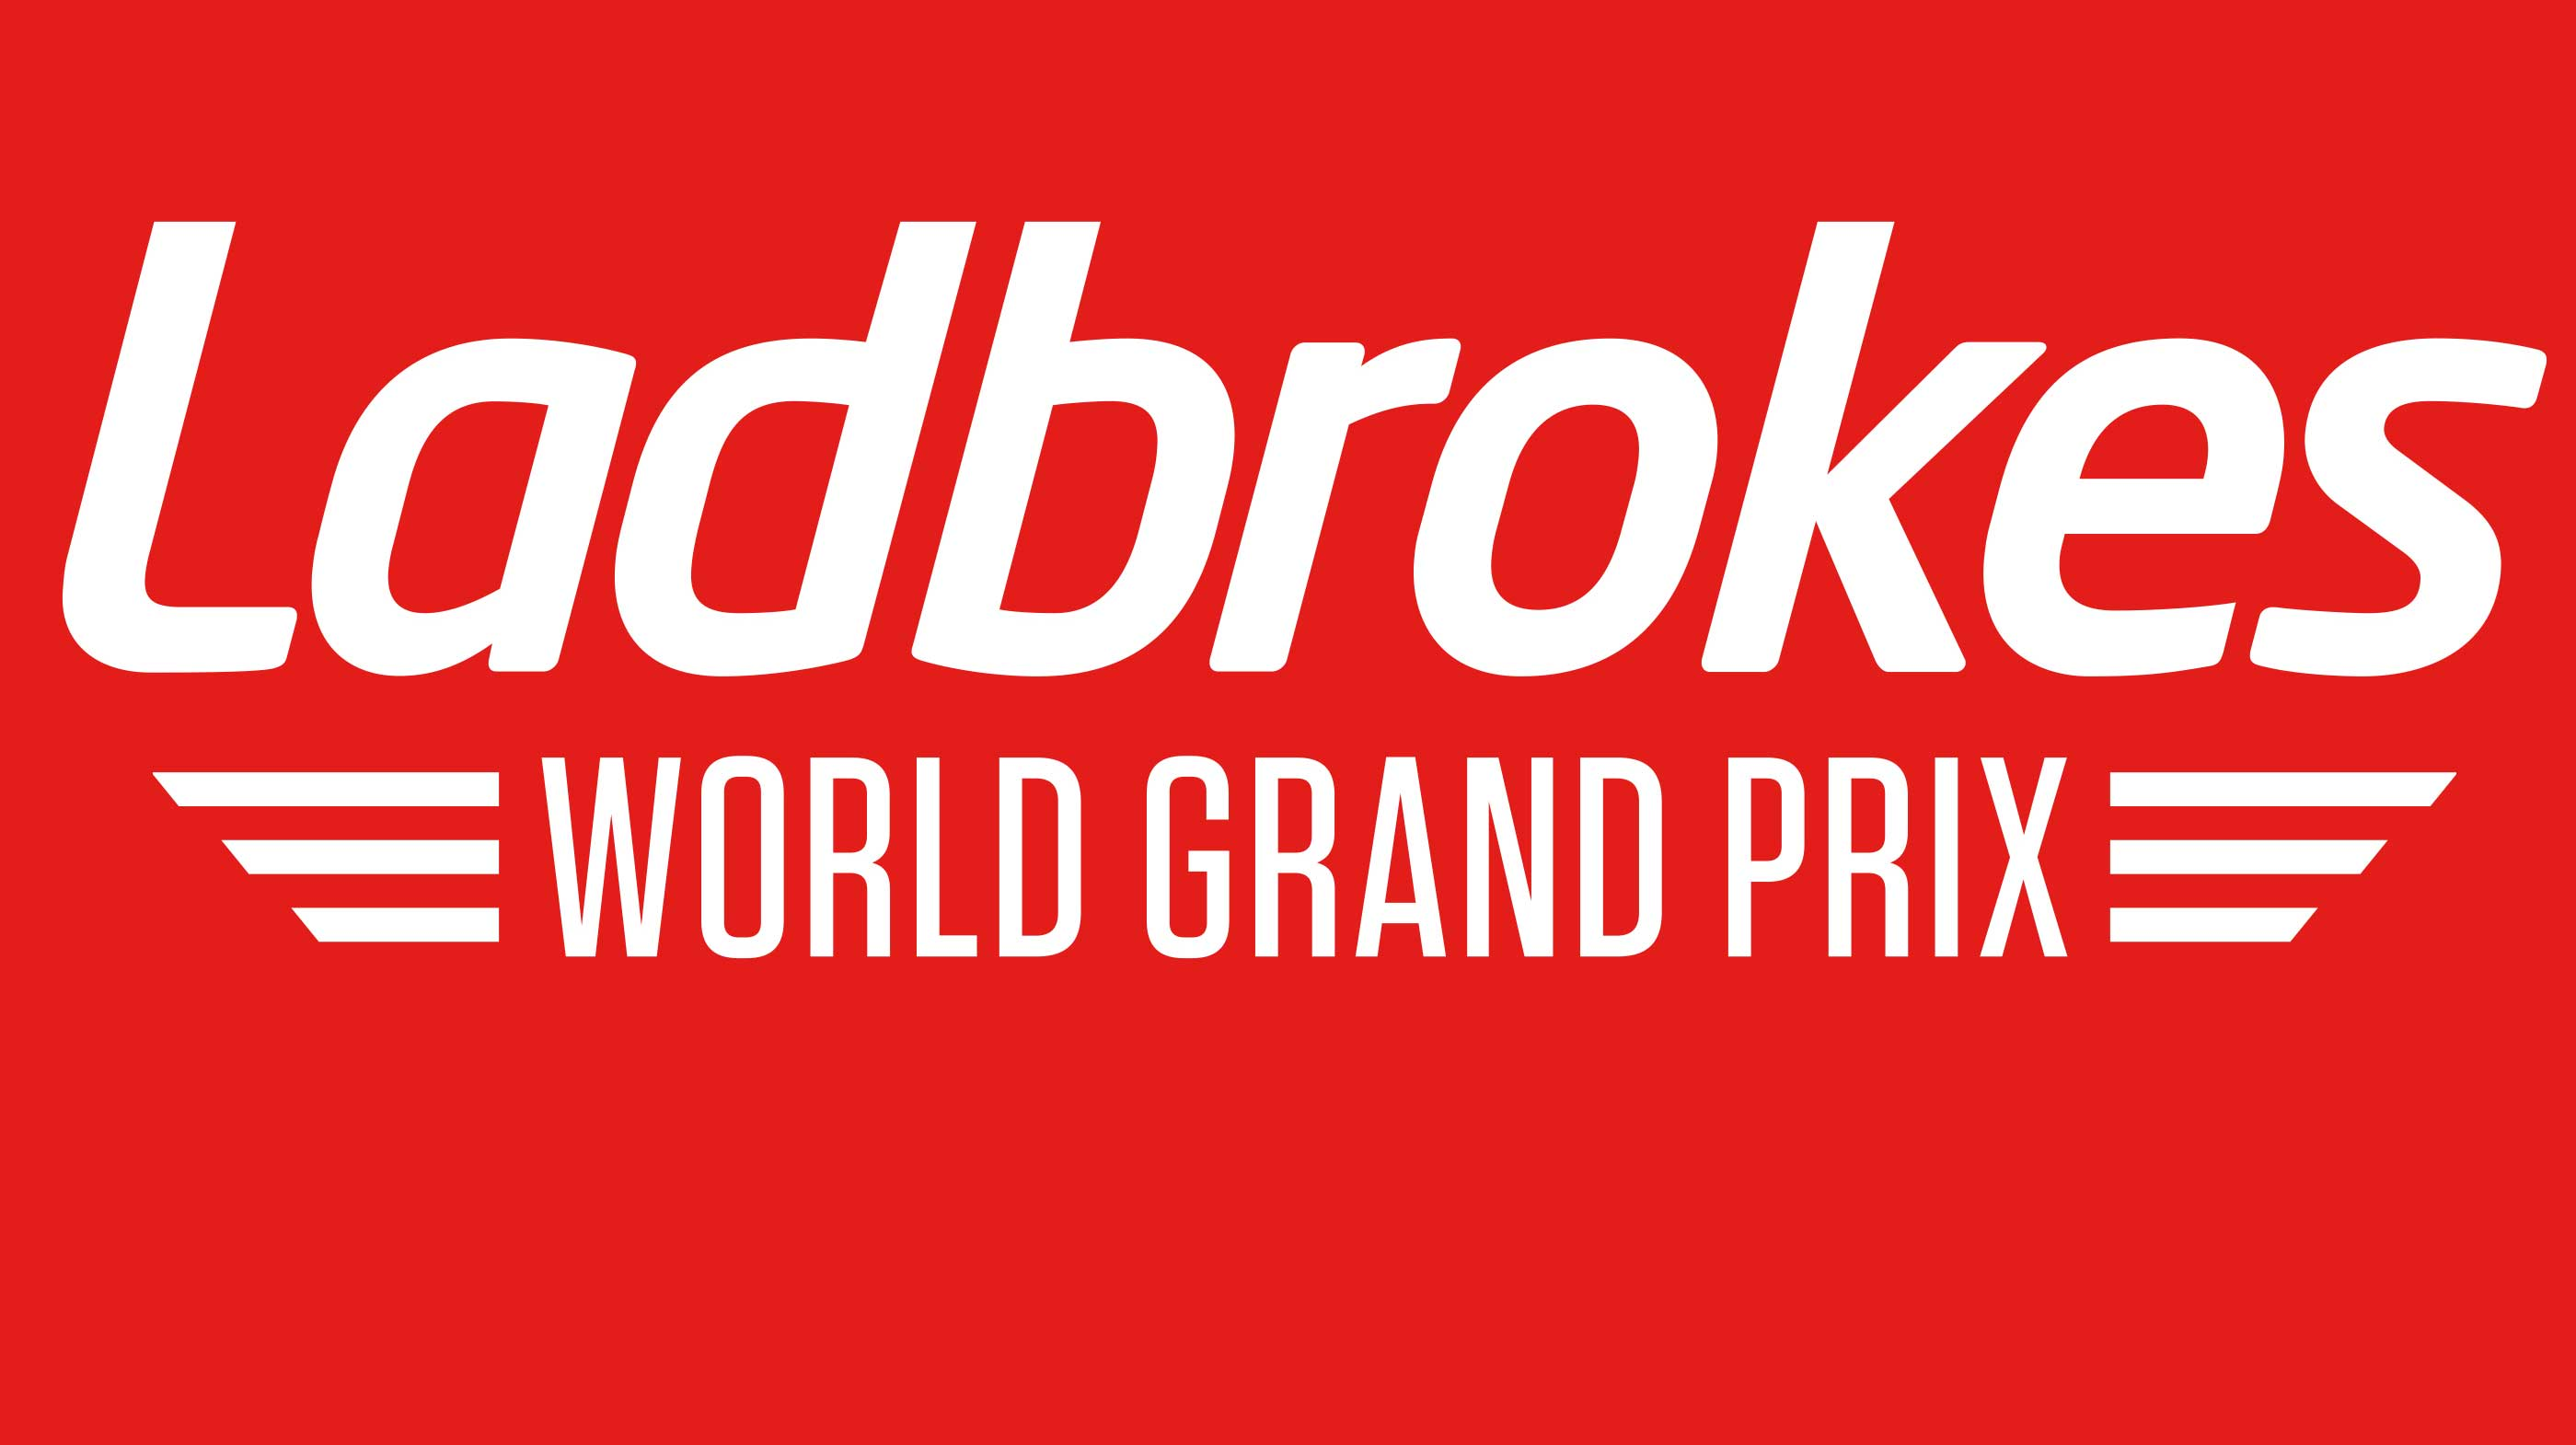 Ladbrokes-World-Grand-Prix